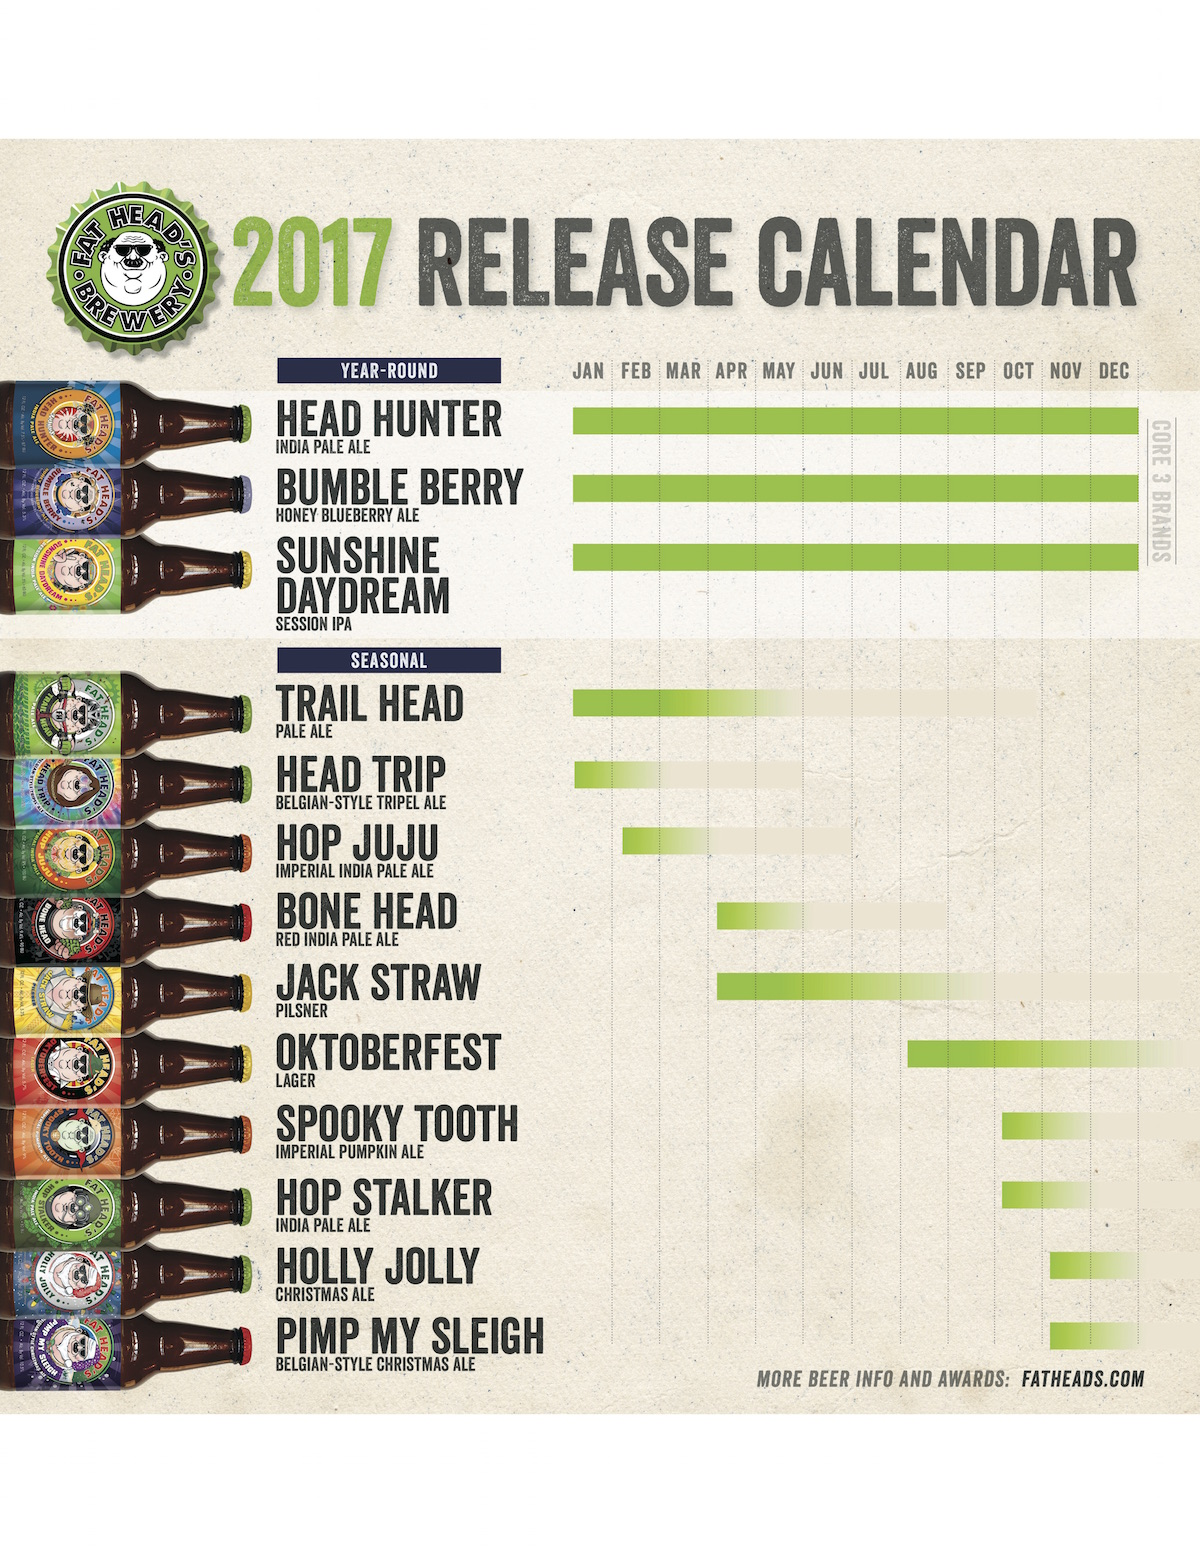 2017 Fat Head's Beer Release Calendar